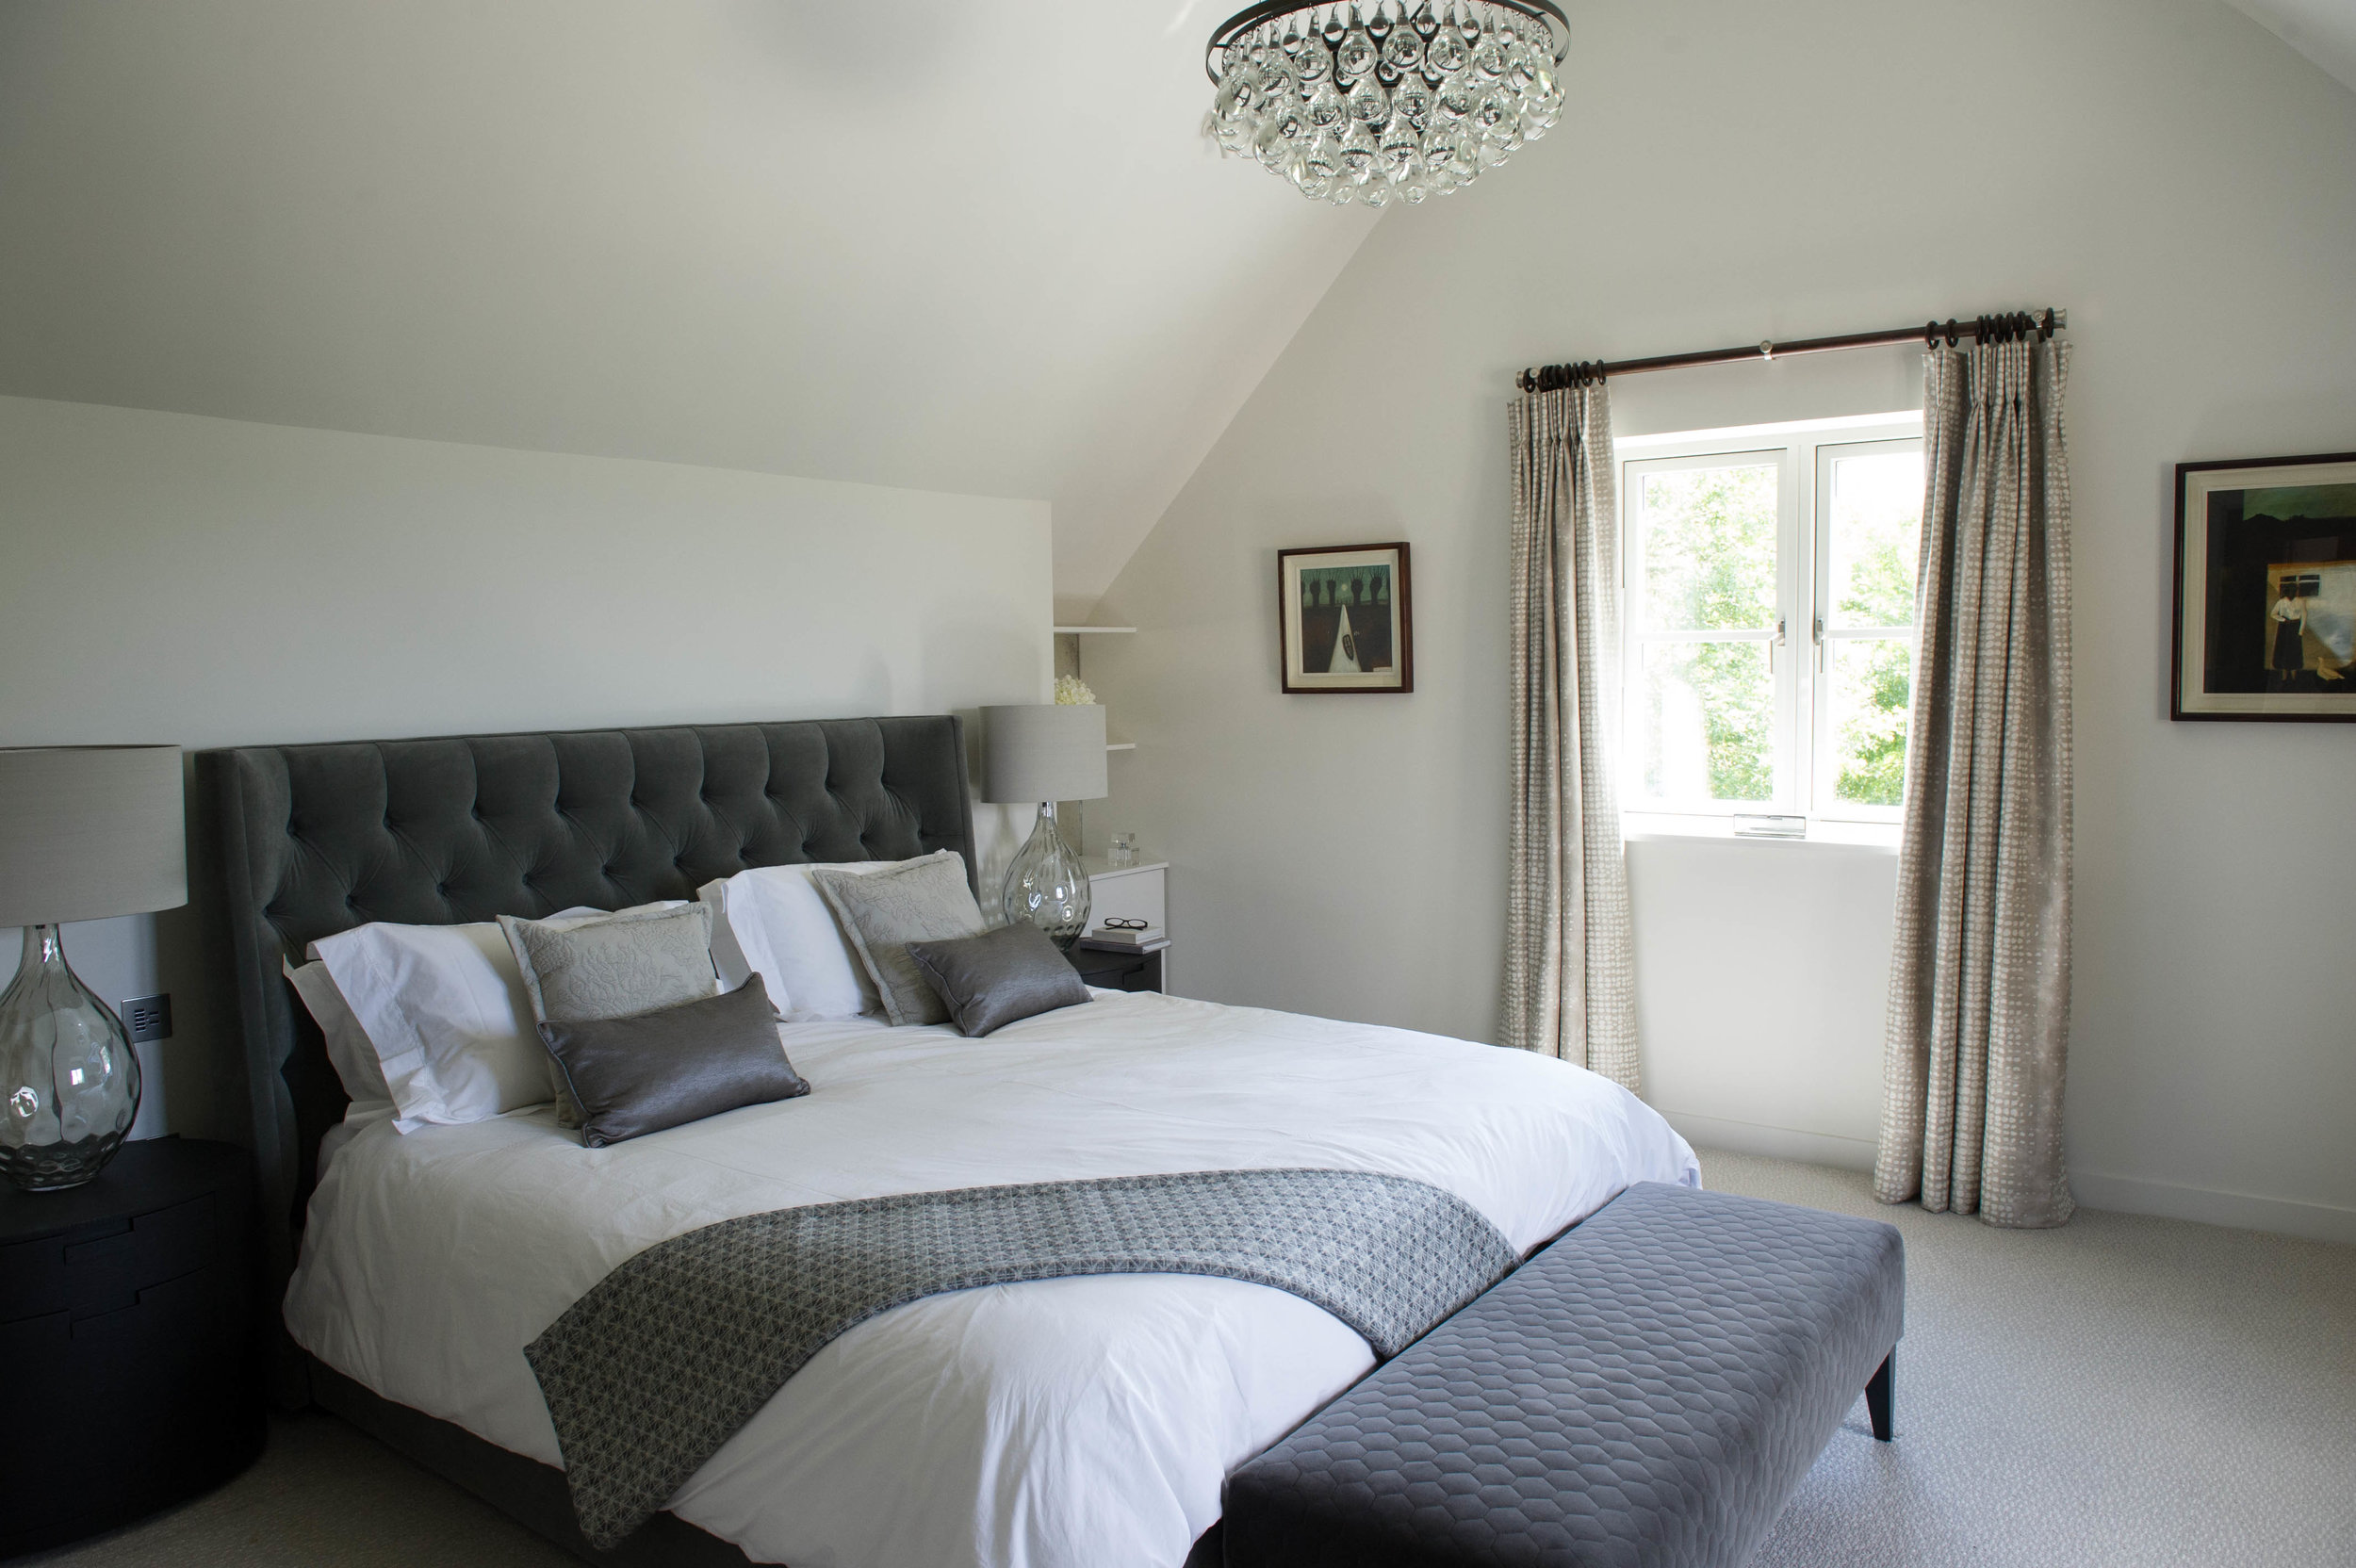 Master bedroom in grey tones with glass table lamps, quilted bench, contemporary glass chandelier and upholstered bed dressed with cushions and throw. By Joseph Interior Design, Cheltenham.